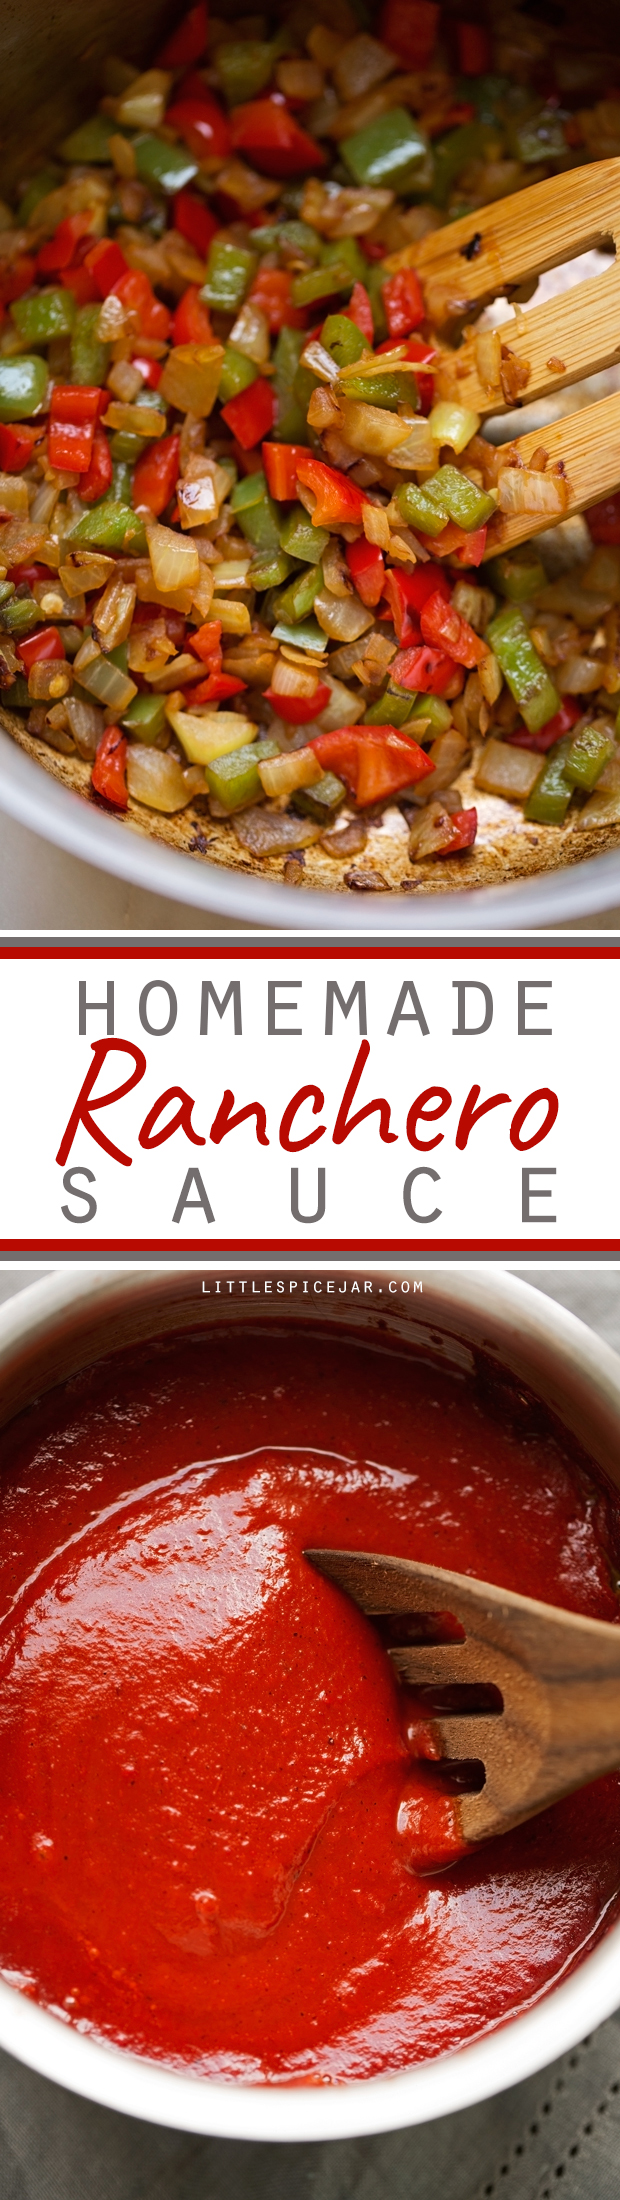 Ranchero Sauce - A simple recipe to make homemade ranchero sauce! This sauce is amazing on huevos rancheros, to dip your breakfast tacos in, or to use as enchilada sauce in casseroles! #rancherosauce #huevosrancheros #tacosauce | Littlespicejar.com